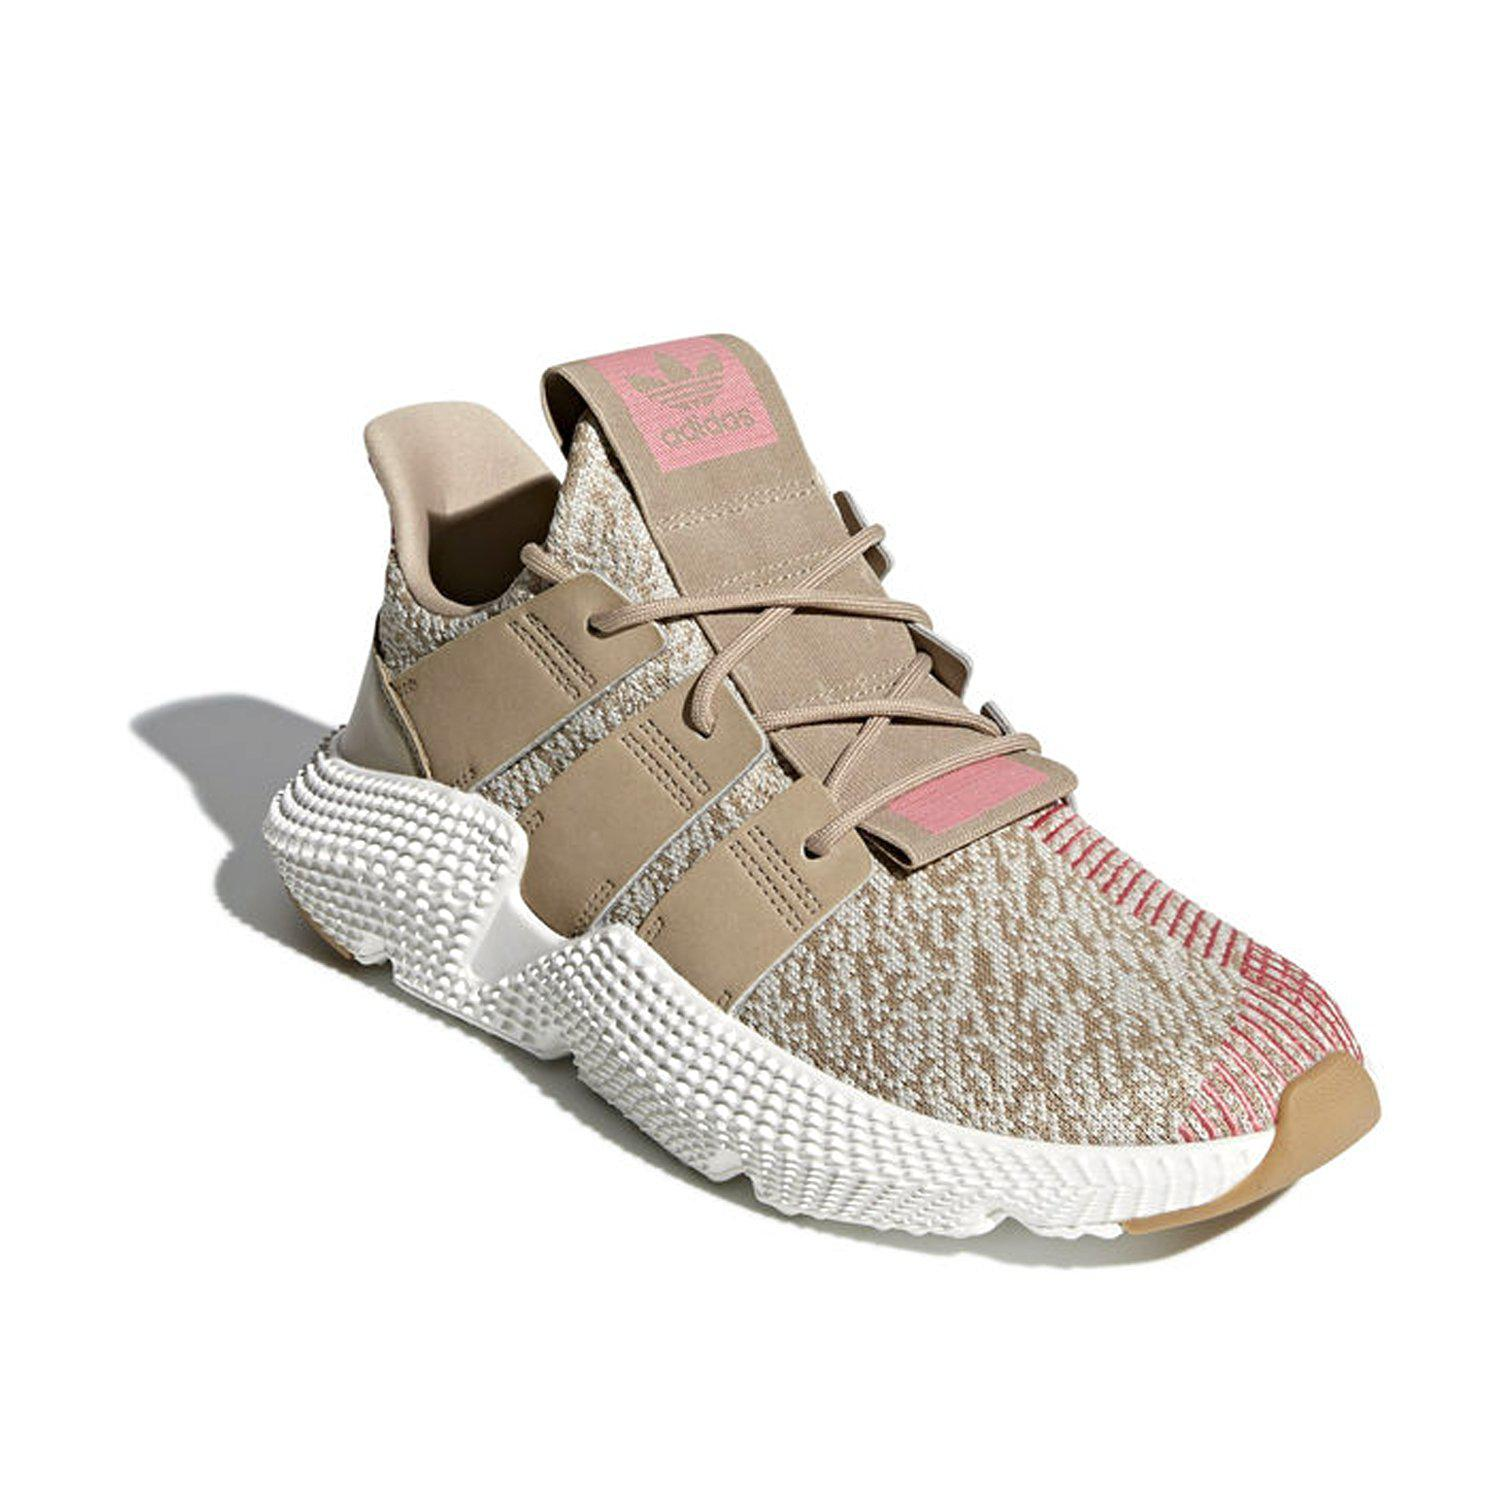 adidas Prophere Tan pink in Pink - Lyst 969318ce0b05